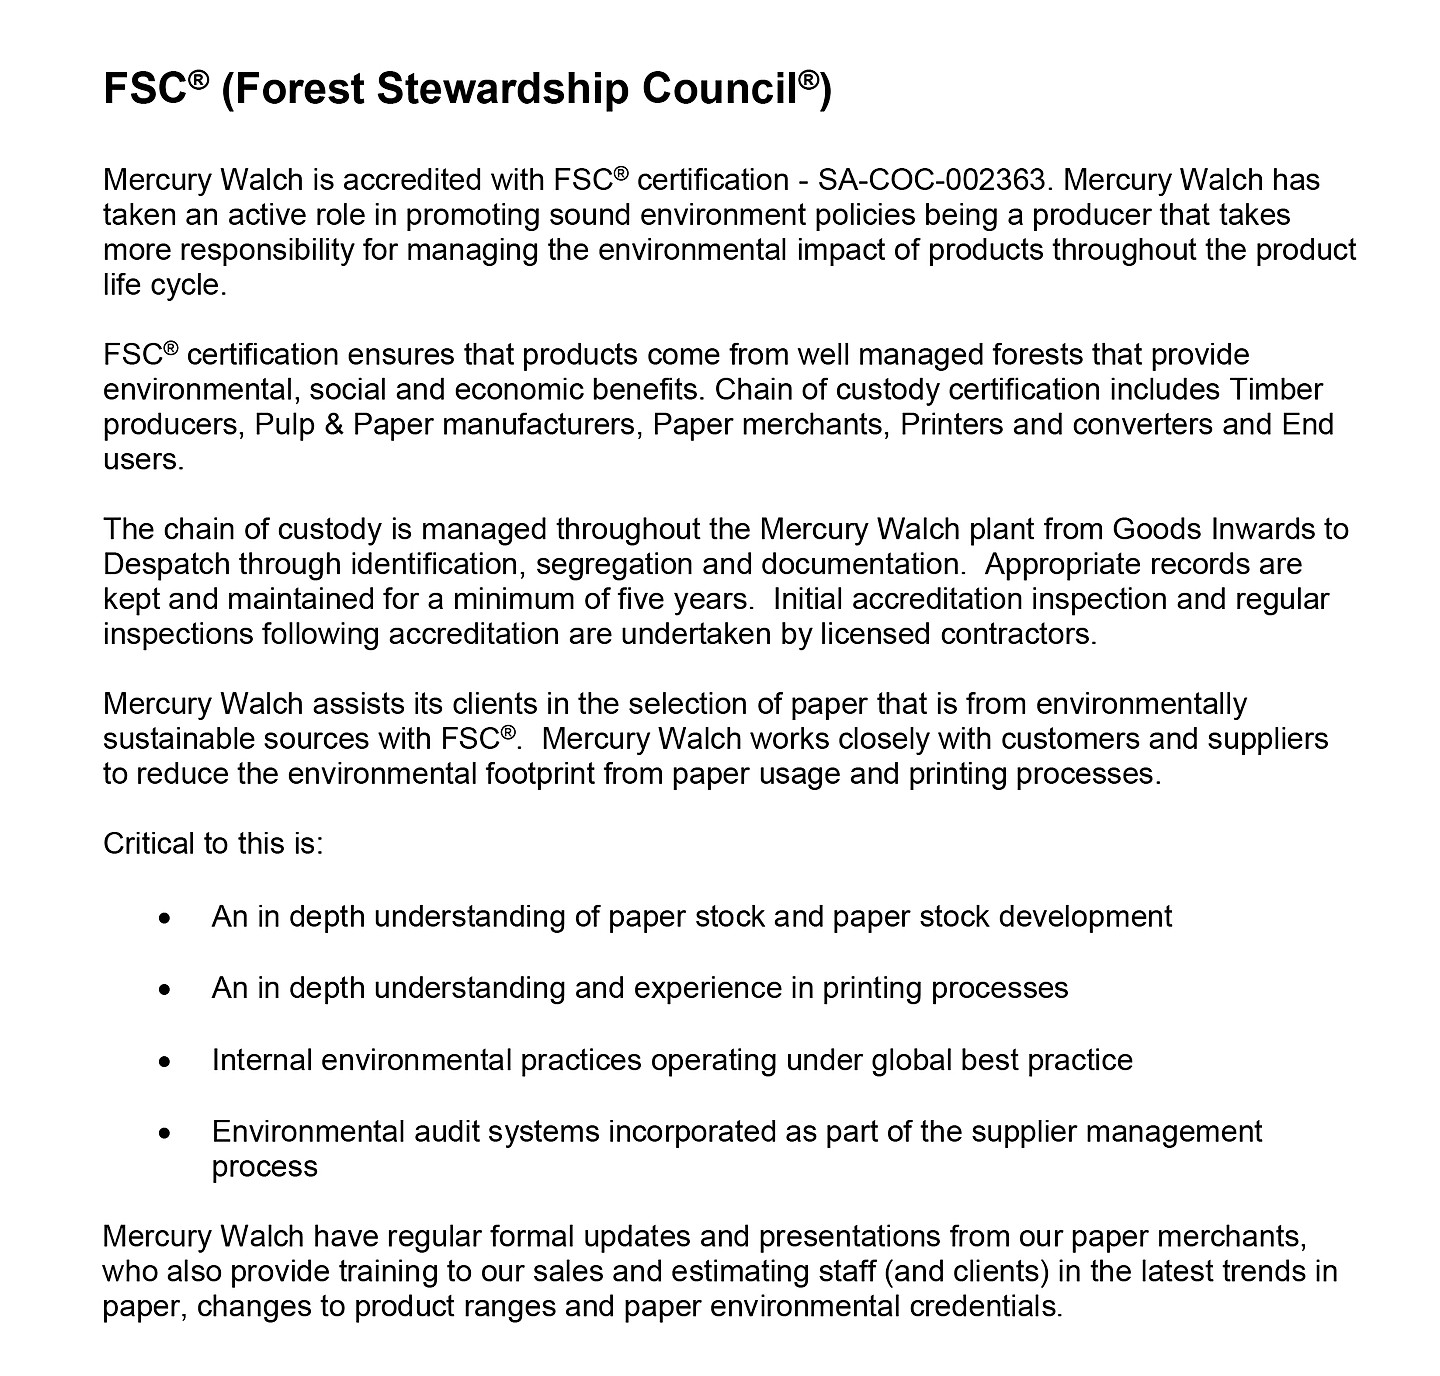 FSC - Policy Statement